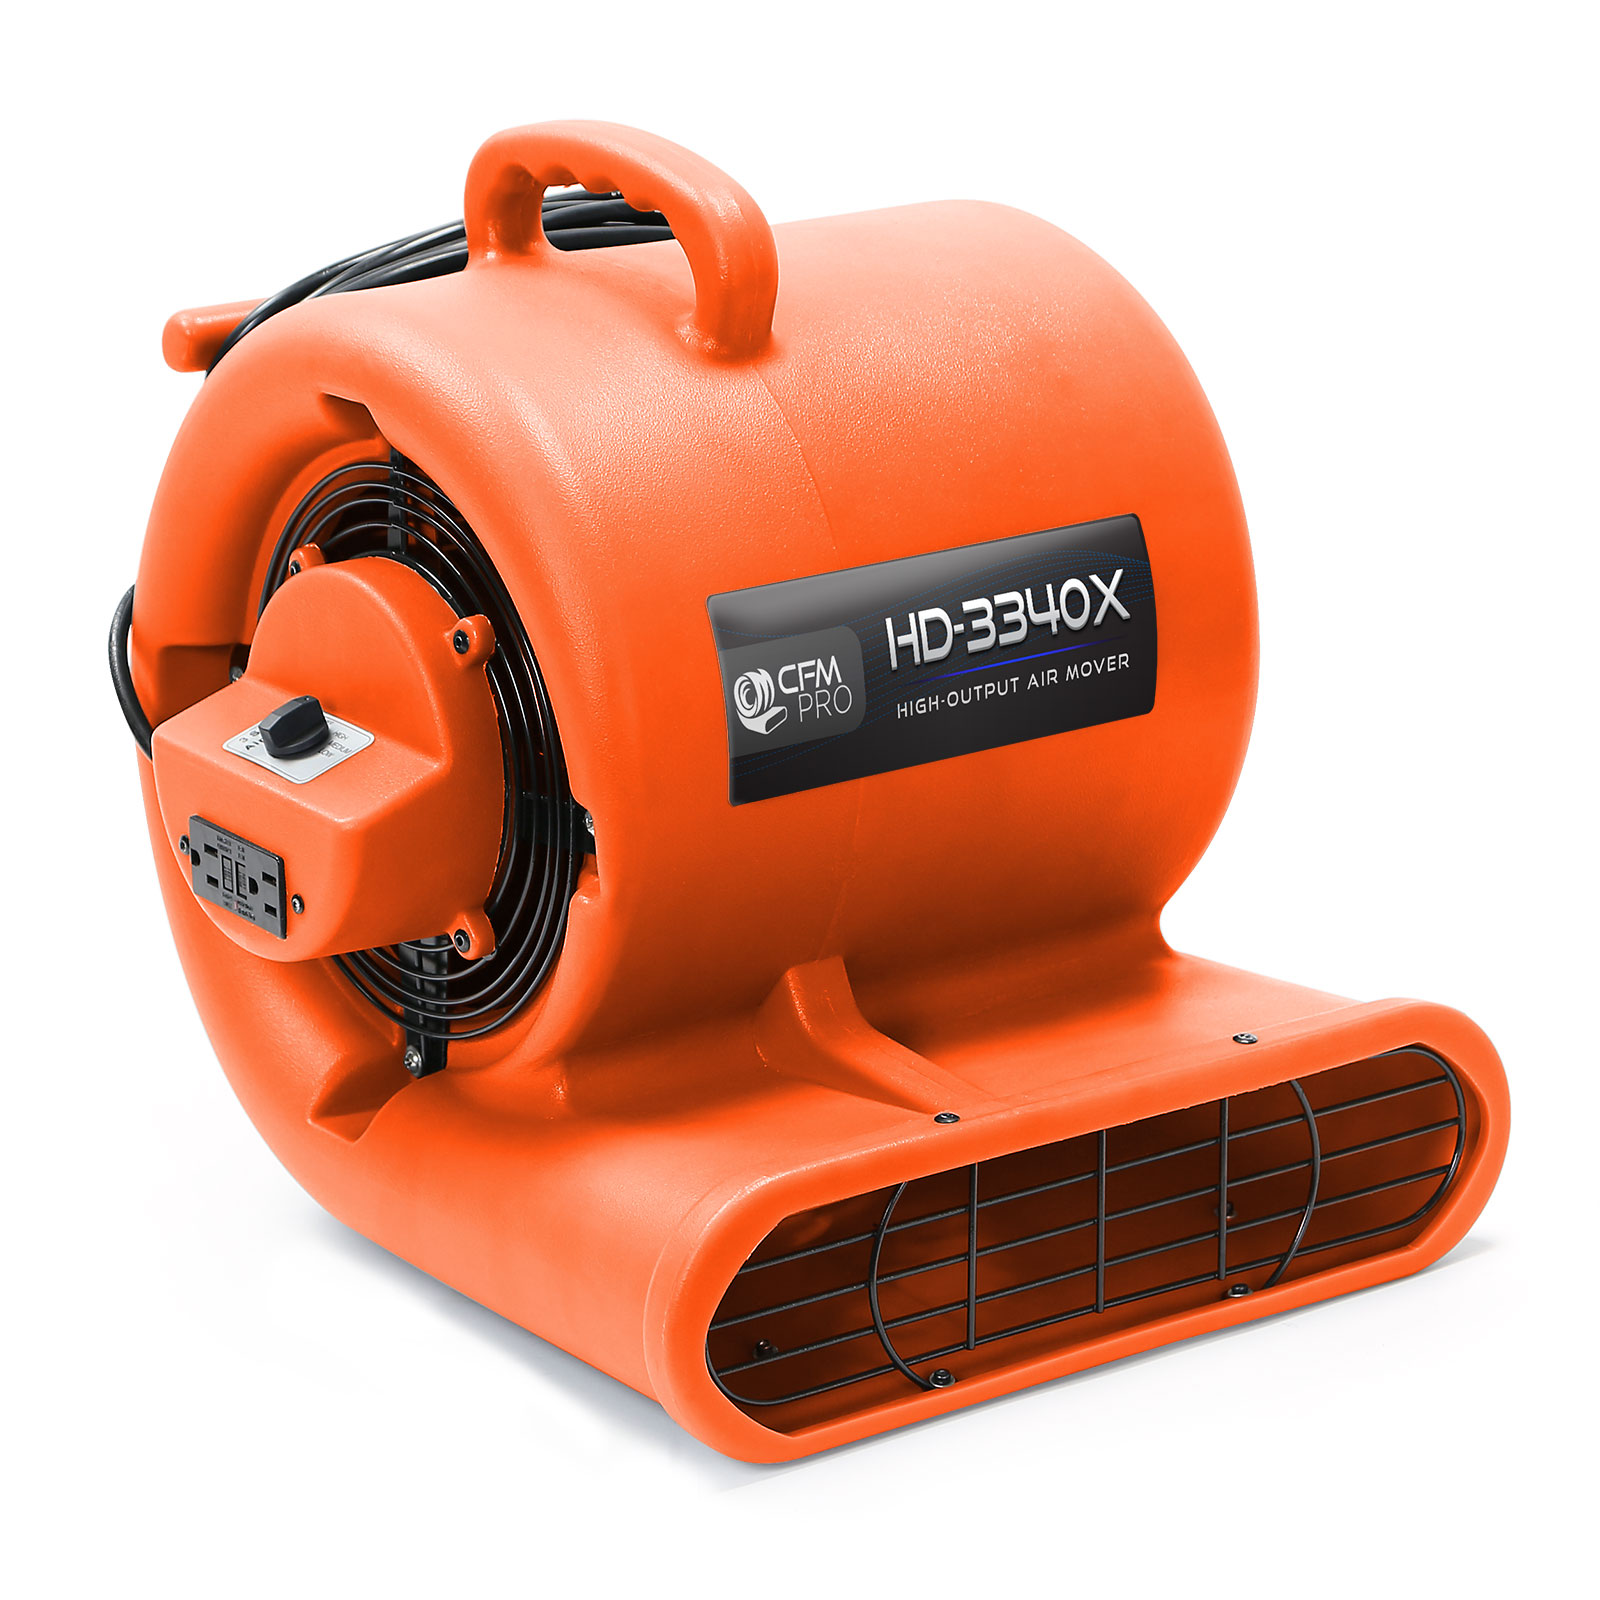 CFM PRO Air Mover Carpet Floor Dryer 3 Speed 1/3 HP Blower Fan with 2 GFCI Outlets - Stackable - Industrial Water Flood Damage Restoration